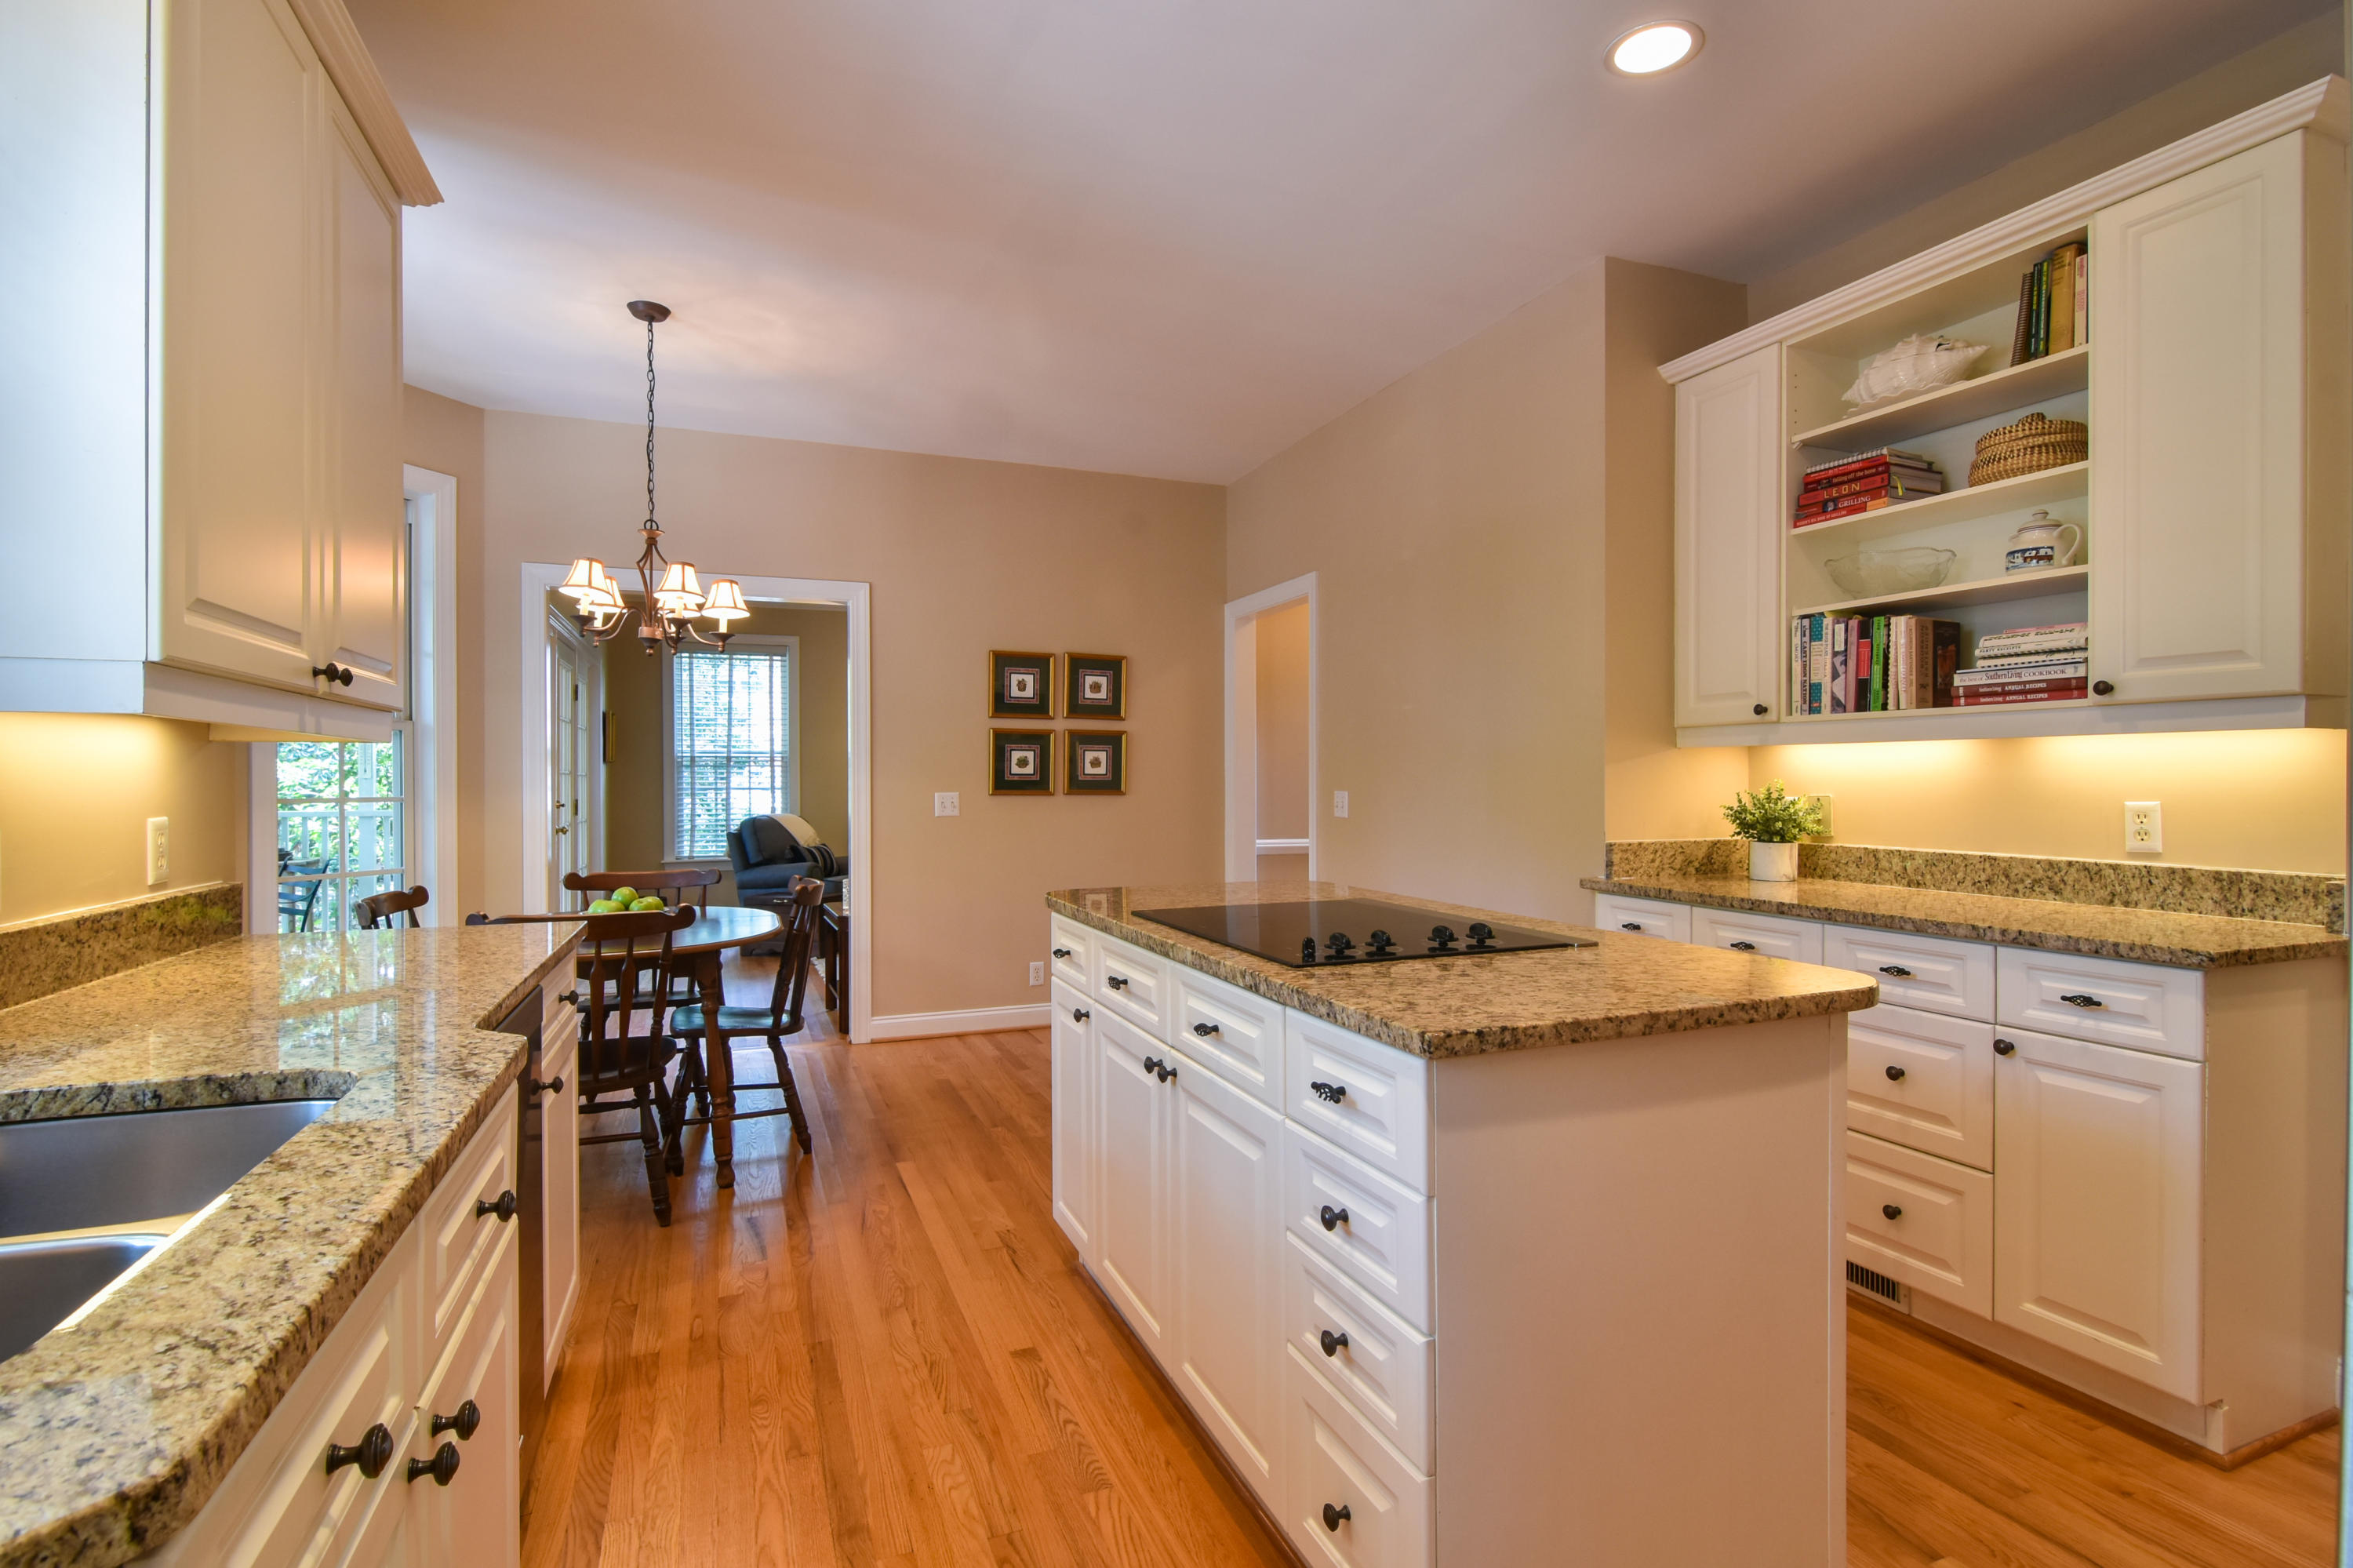 Somerset Point Homes For Sale - 690 Cain, Mount Pleasant, SC - 0